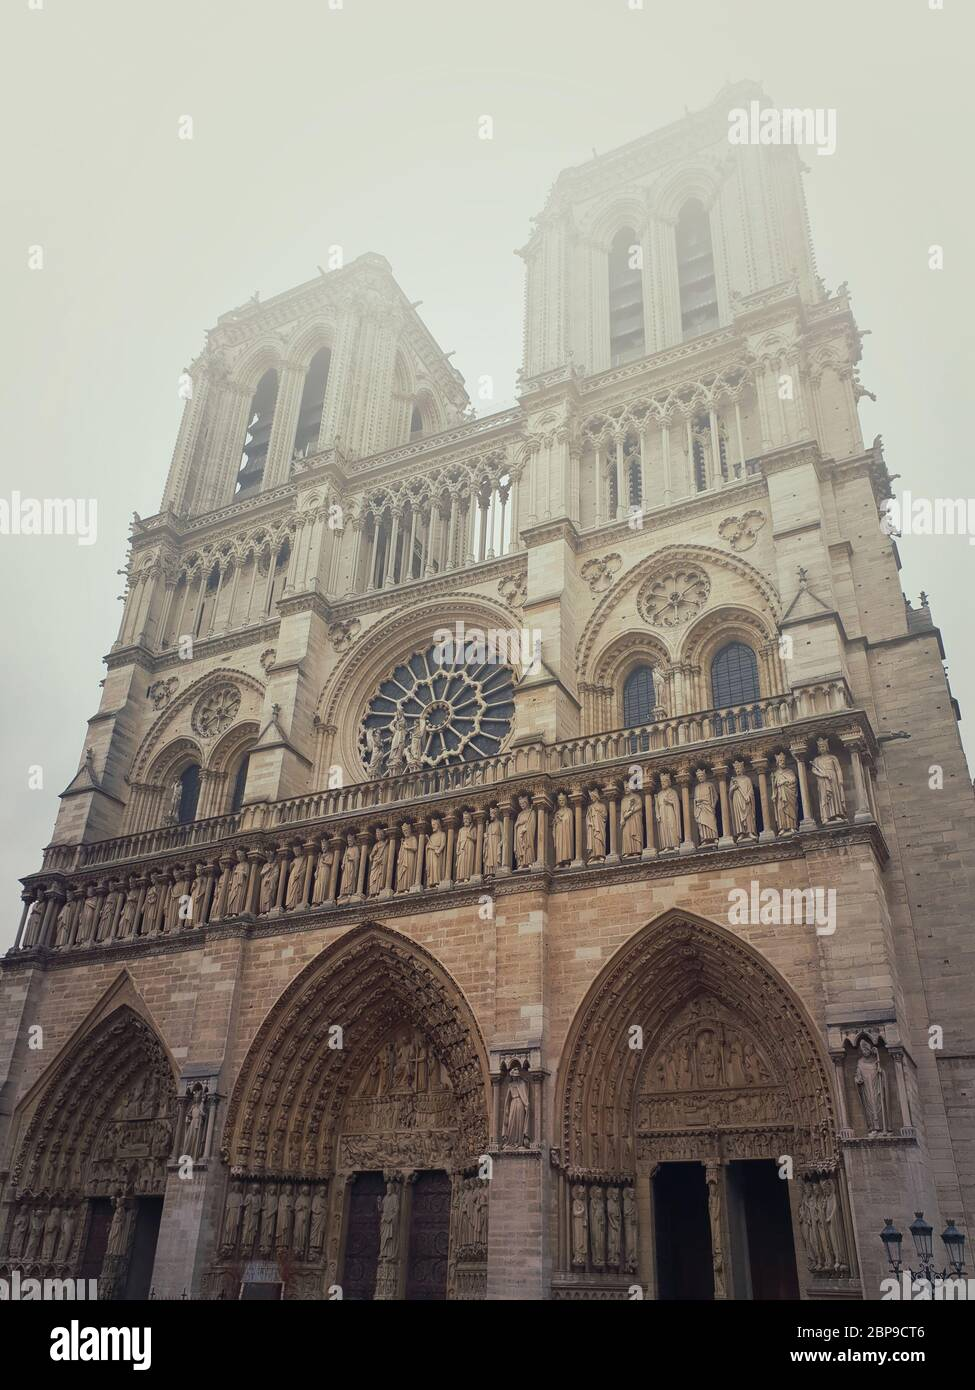 Notre Dame de Paris cathedral facade in a foggy morning. Gorgeous gothic architecture. Stock Photo